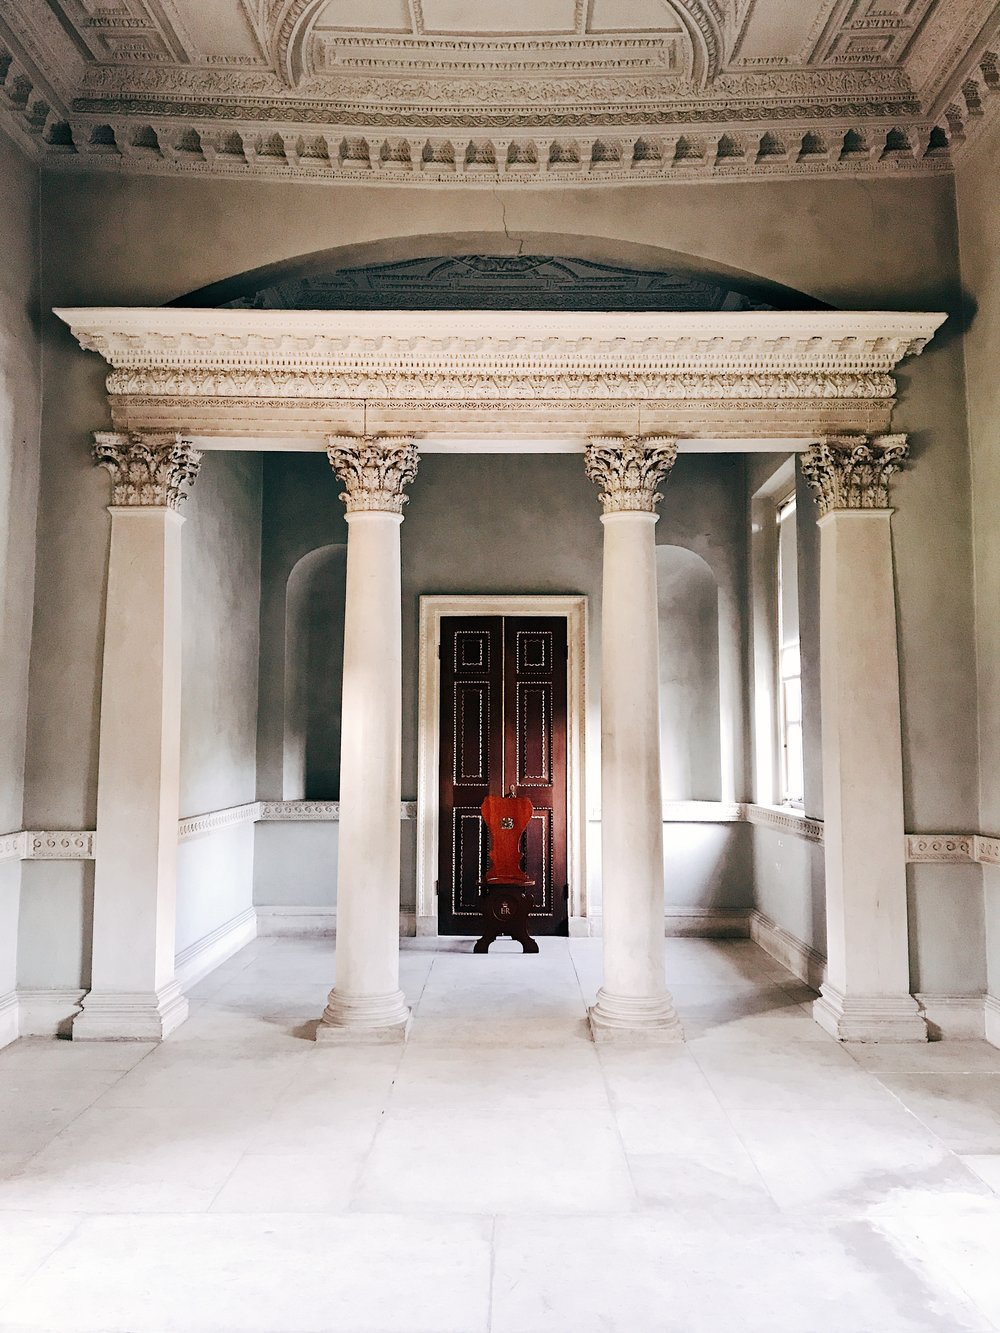 Image: Reasons to Visit London - Many Images to Inspire You to Visit London - Chiswick House